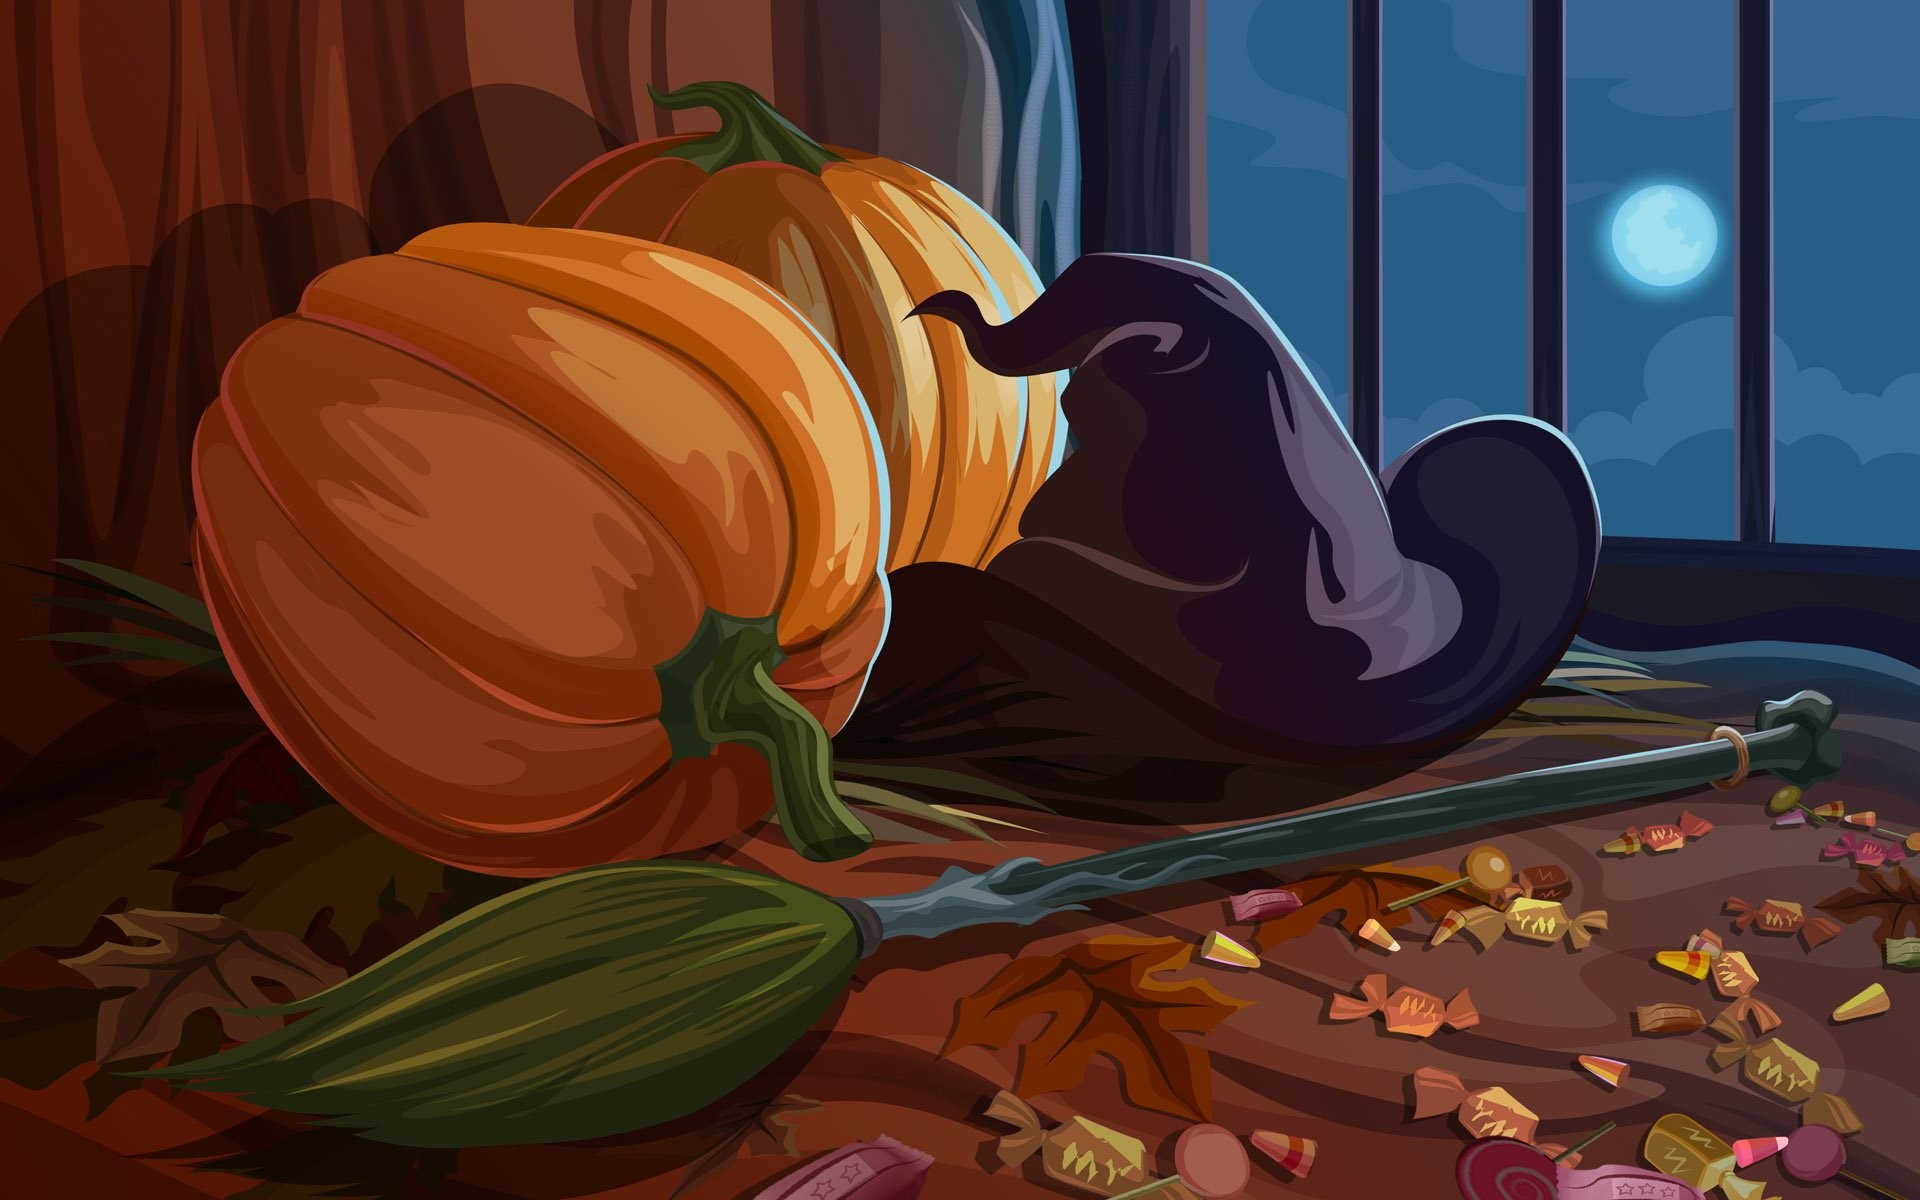 Scary Halloween Wallpaper Witches